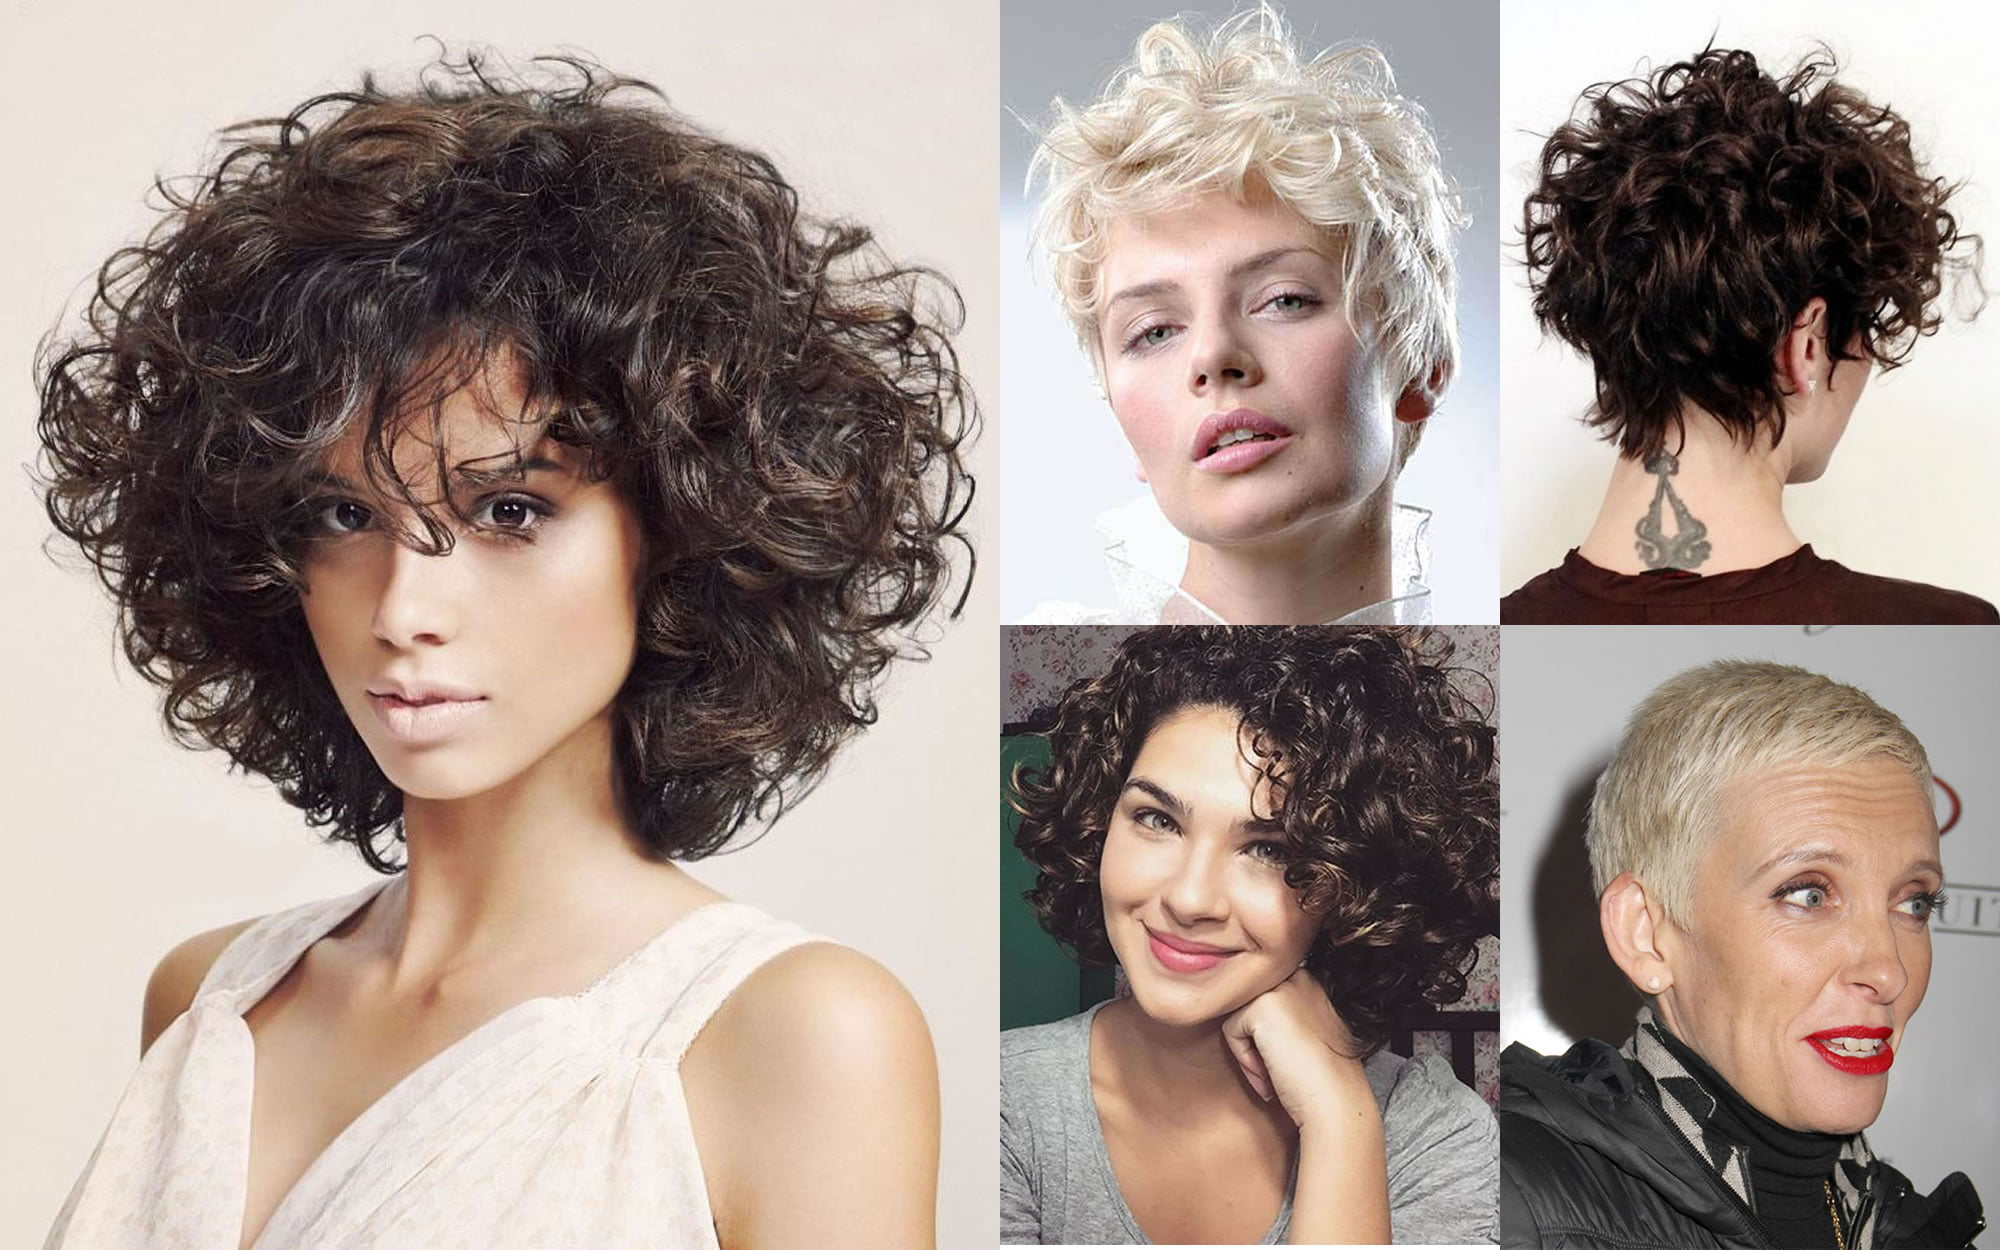 Short Hairstyles 2019 Wavy Hair: Short Curly Haircuts For Every Face Shapes 2018-2019